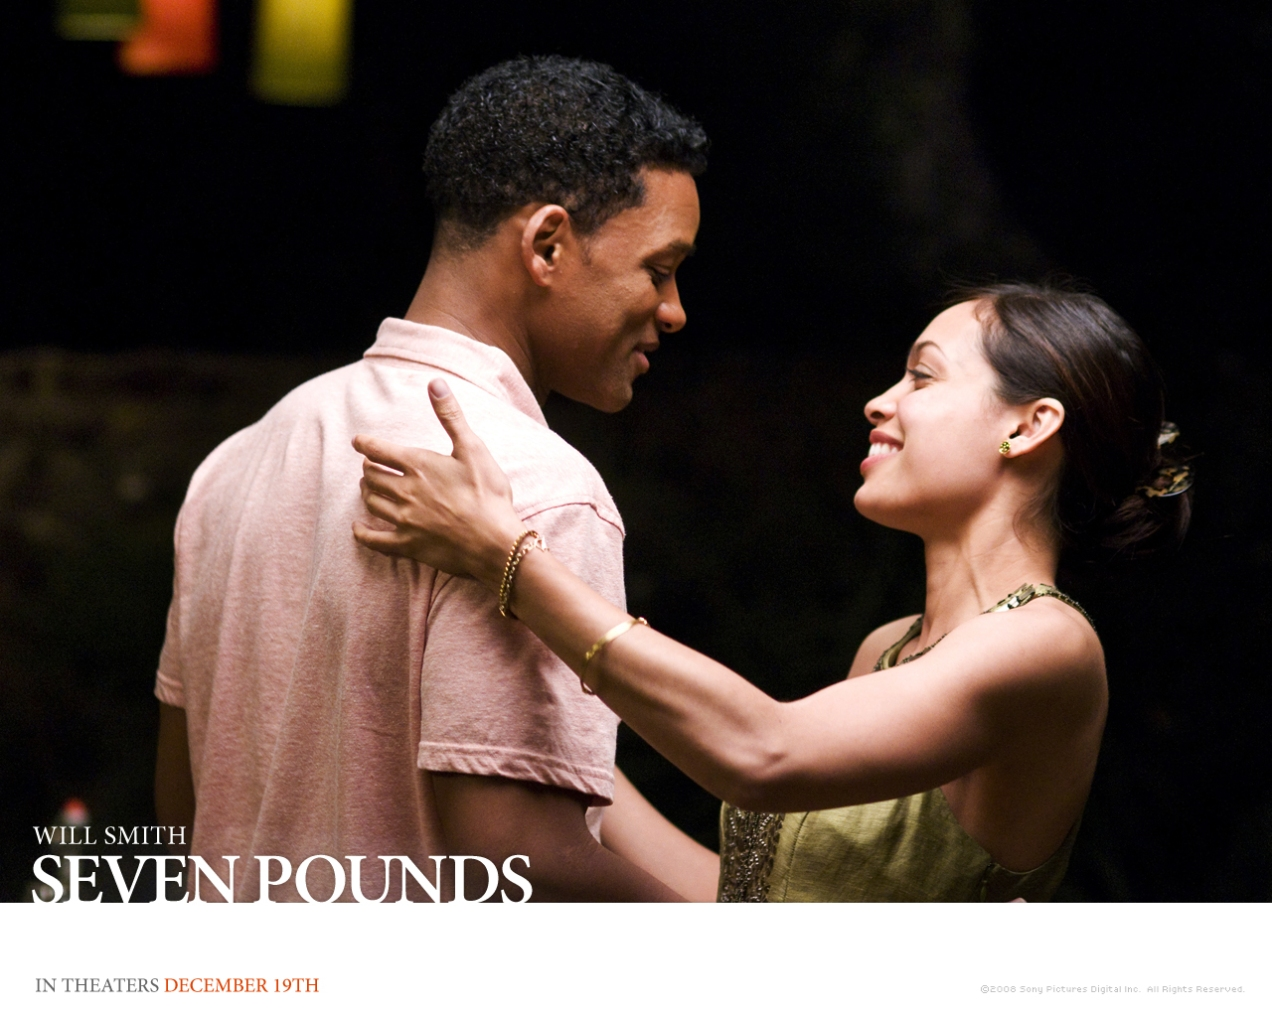 Will_Smith_in_Seven_Pounds